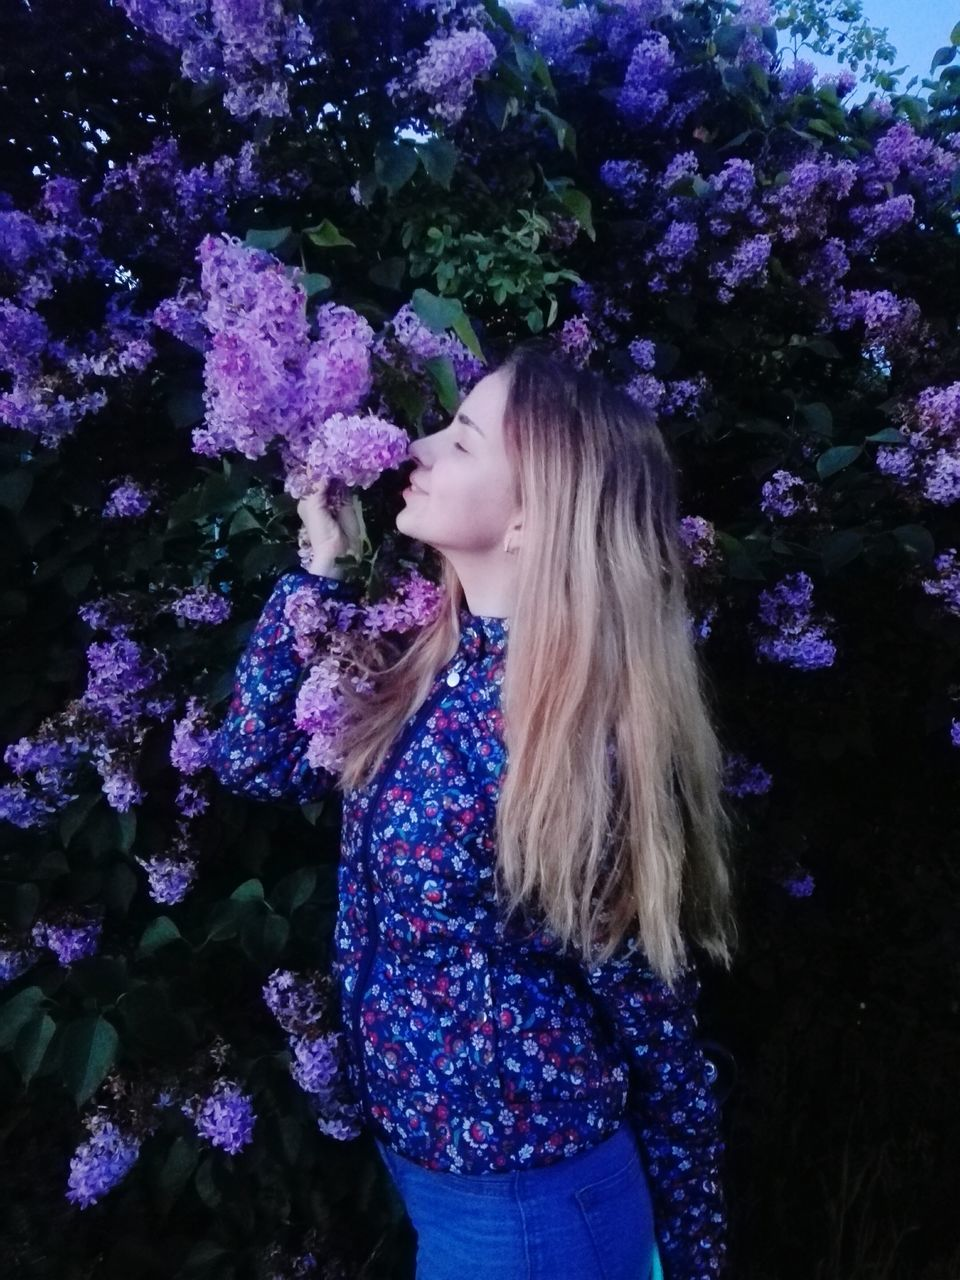 flower, young adult, young women, real people, one person, leisure activity, beautiful woman, blond hair, nature, lifestyles, outdoors, day, standing, happiness, beauty in nature, fragility, tree, freshness